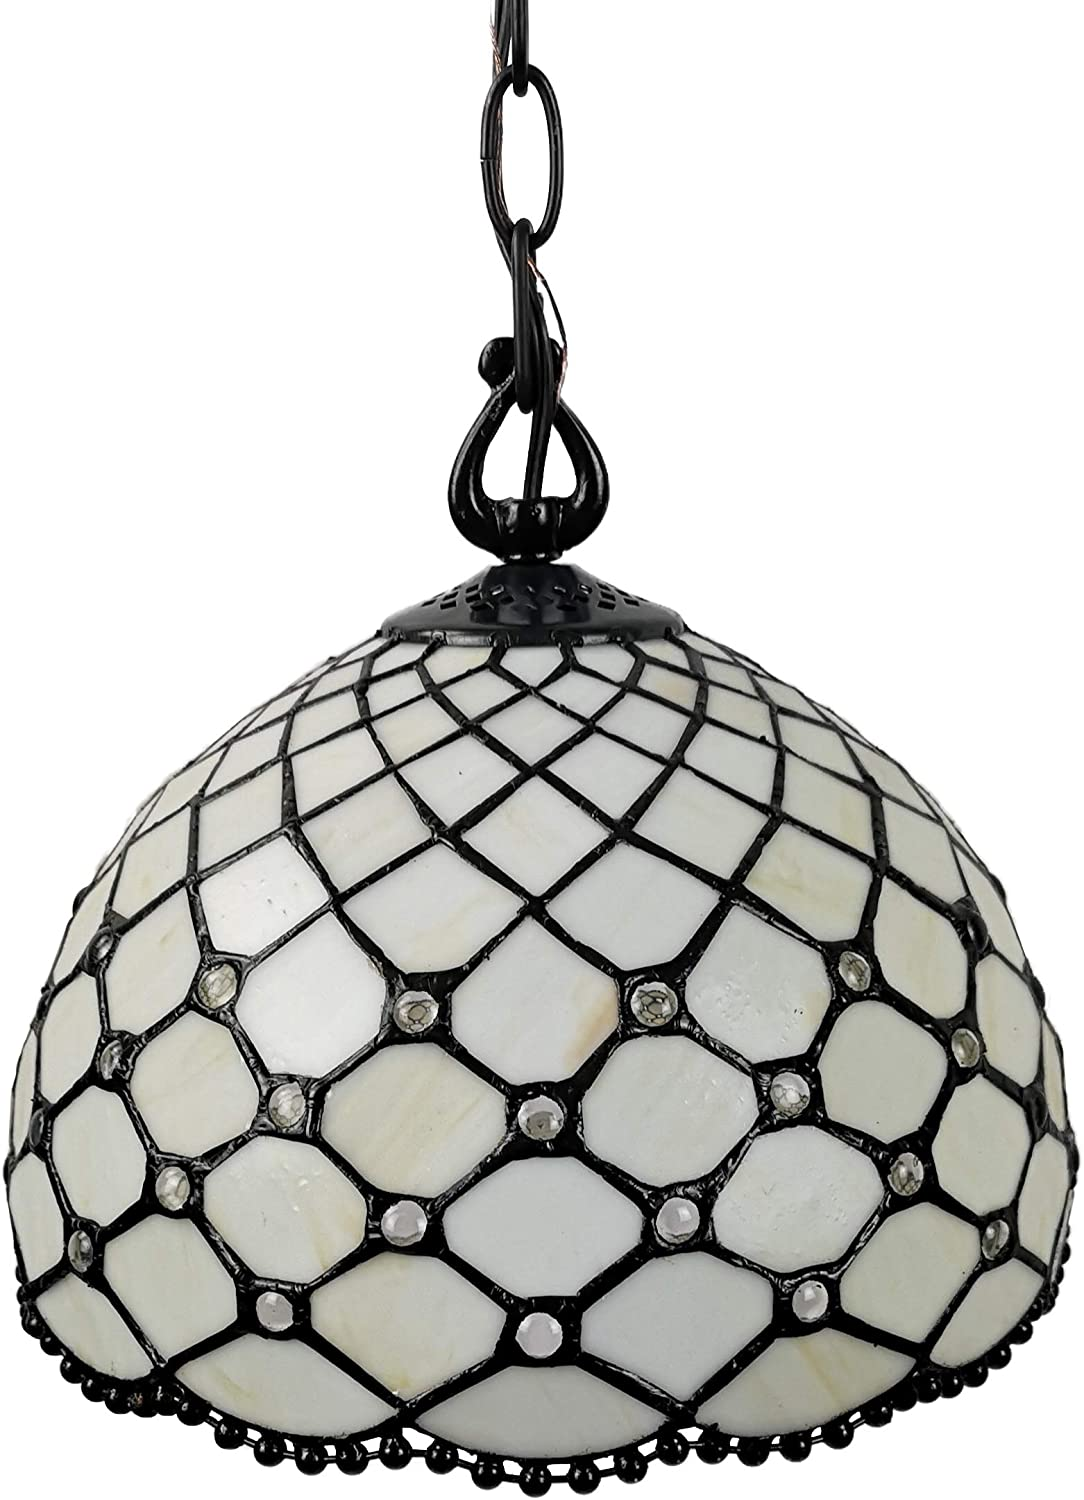 Amora Lighting Tiffany Style Hanging Pendant Lamp Ceiling 12 Wide Stained Glass White Jeweled Antique Vintage Light Decor Restaurant Game Living Dining Room Kitchen Gift AM119HL12B